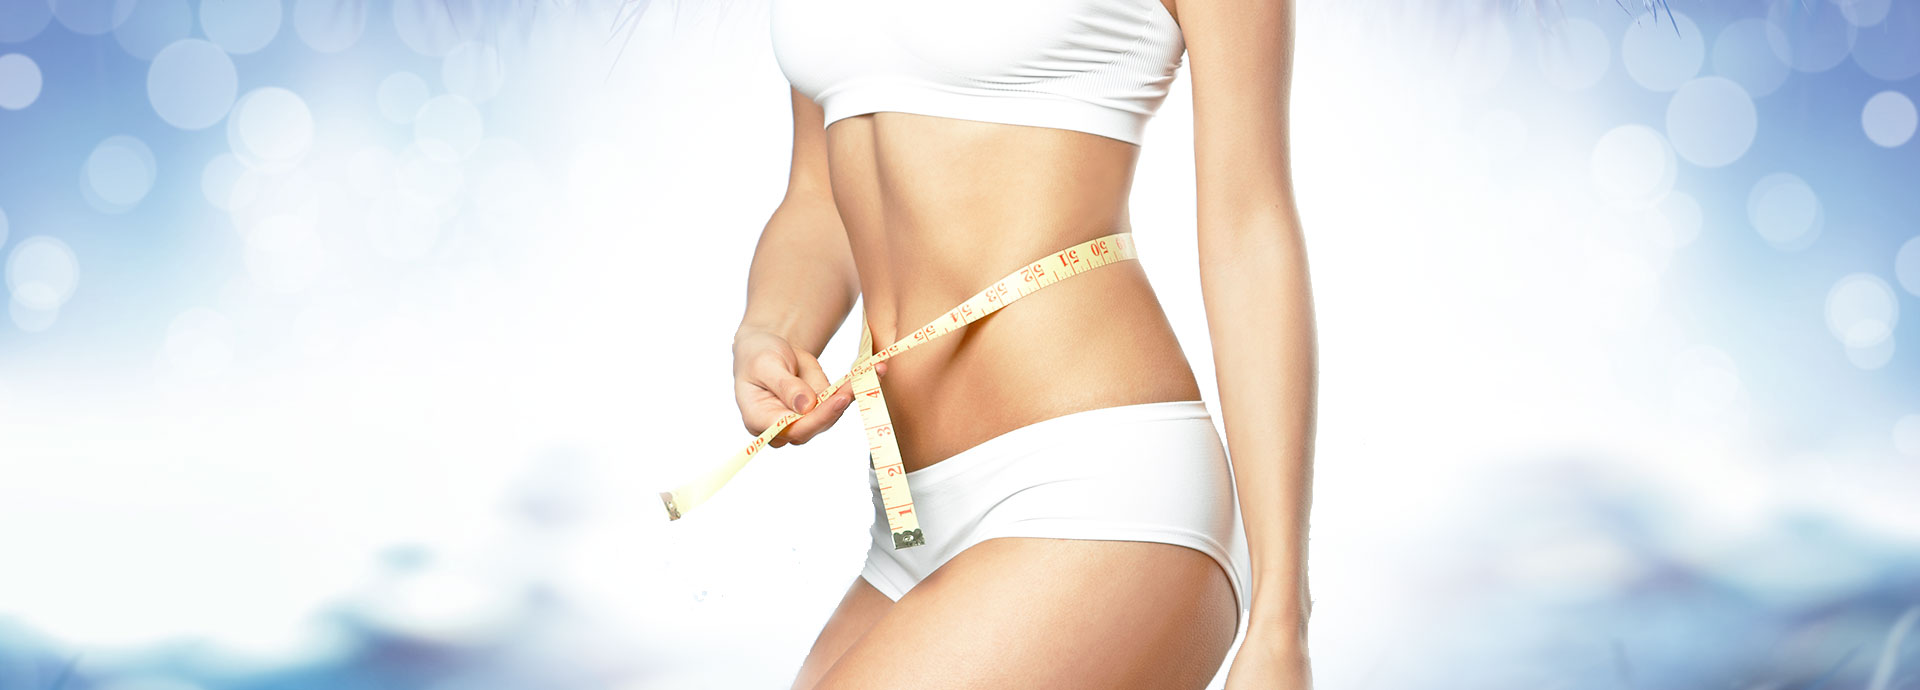 Laser Lipolysis